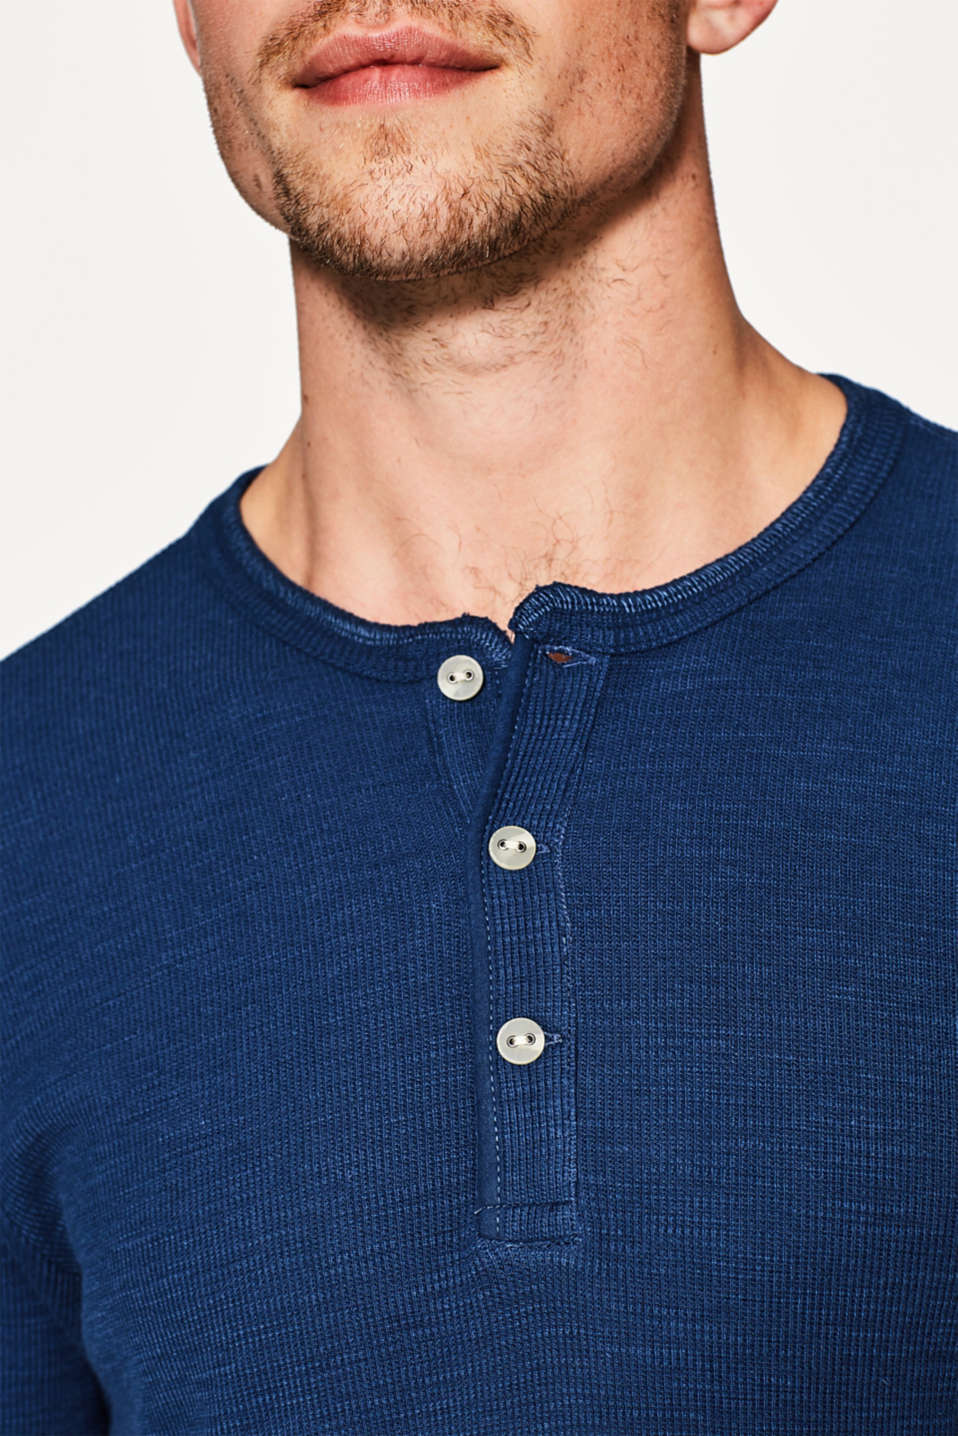 Ribbed slub jersey Henley, cotton